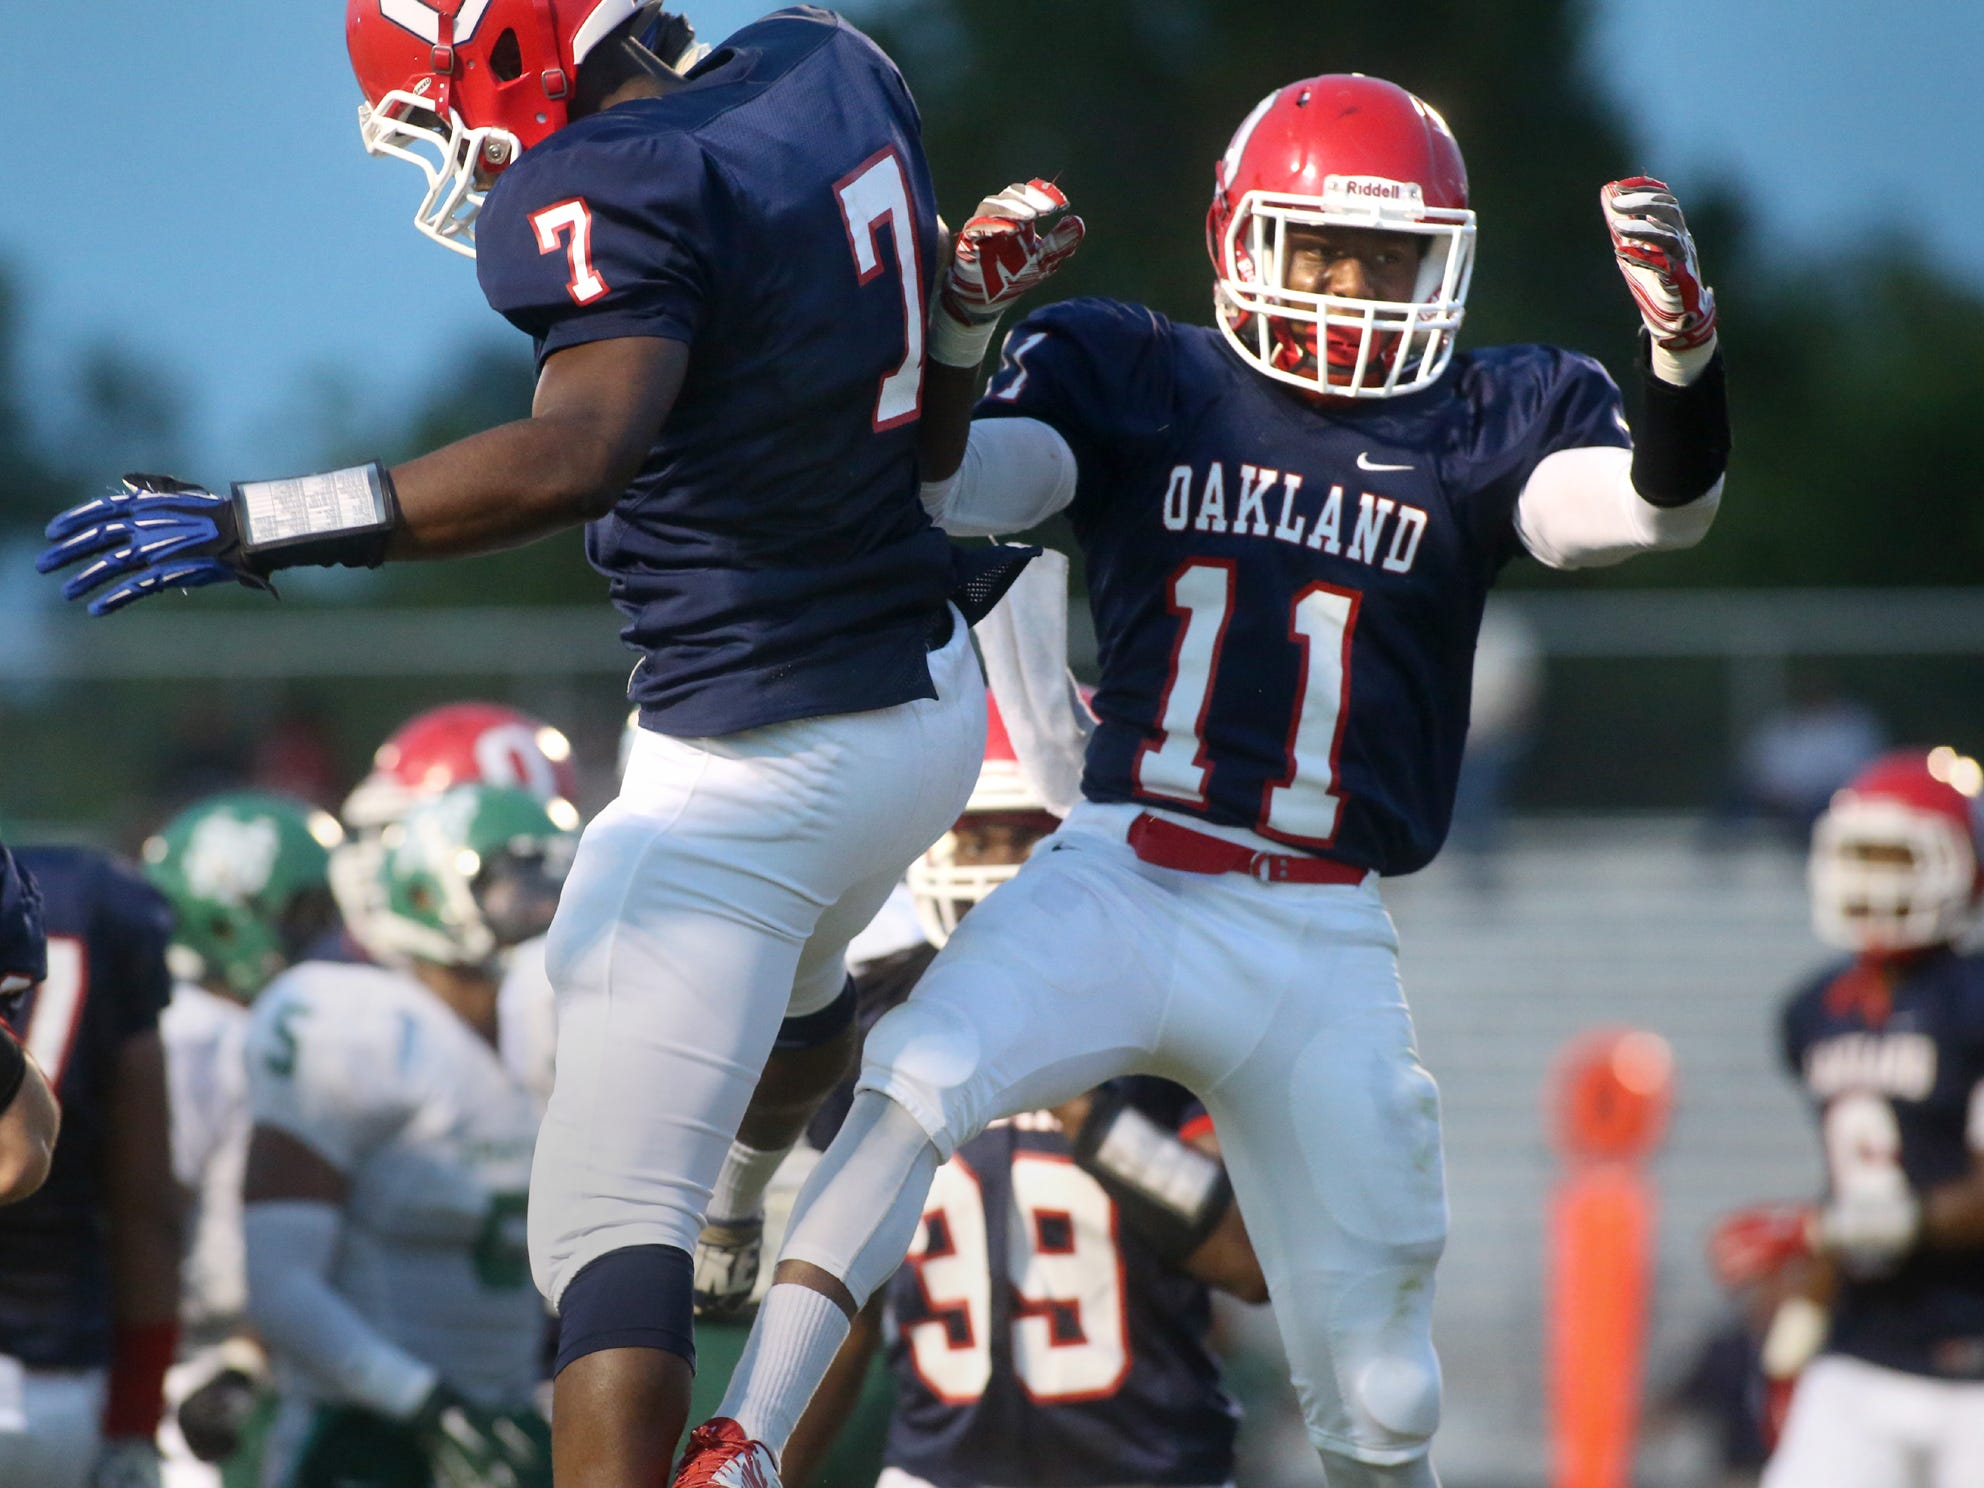 Oakland's JaCoby Stevens, left, and Josh Cunningham celebrate Cunningham's touchdown against White Station in the first half of the game at Oakland, on Friday, August 2, 2014.